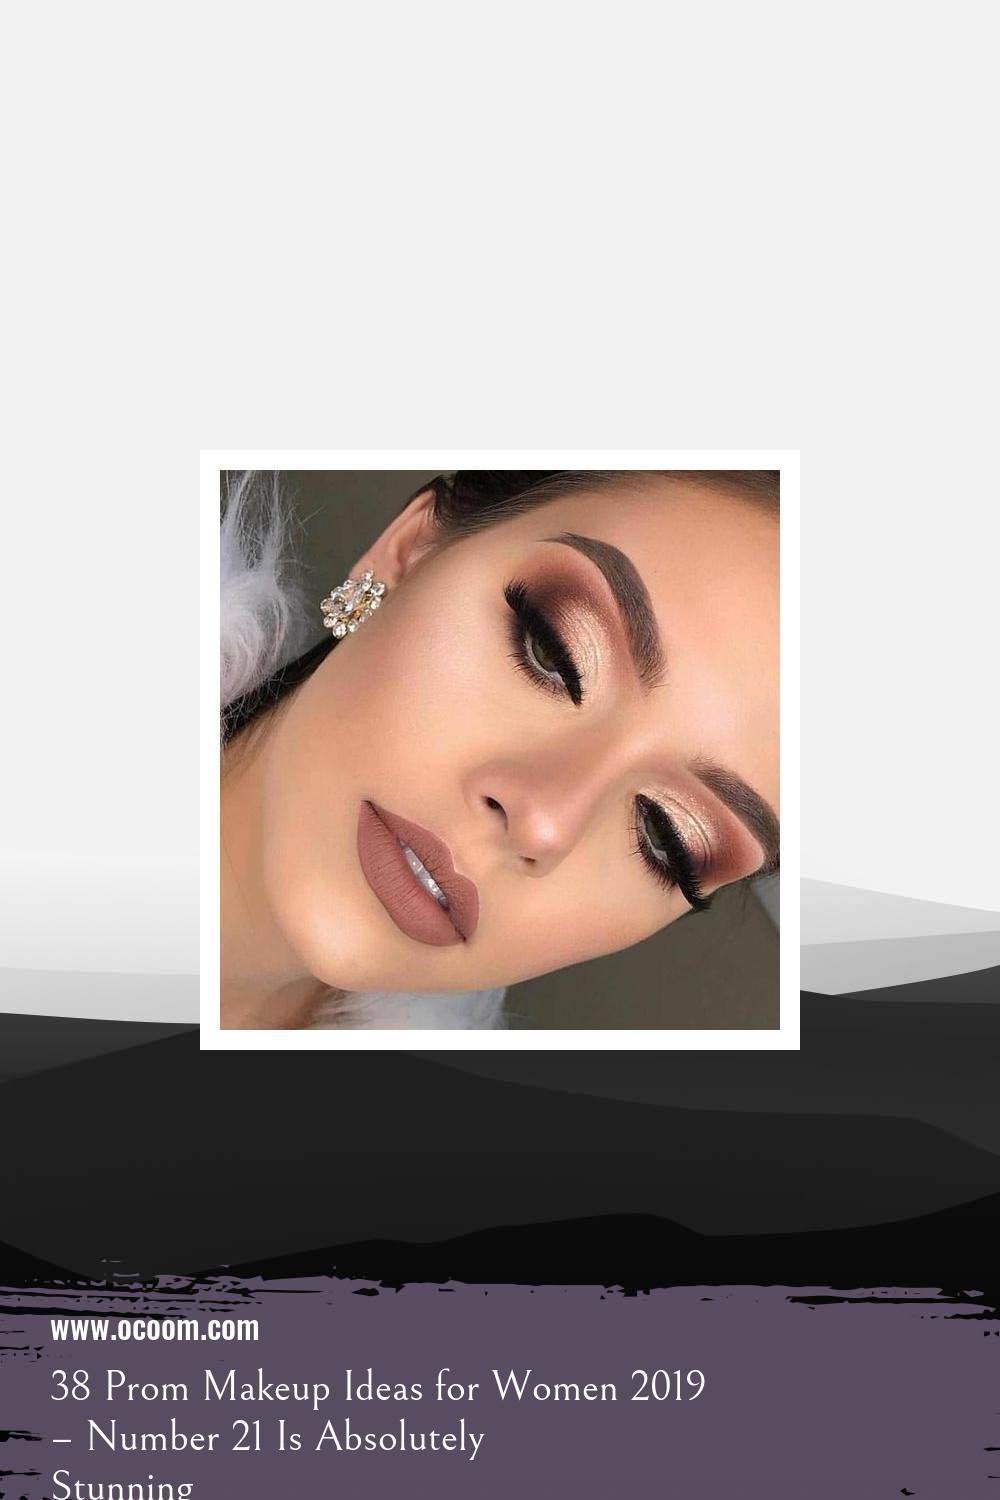 38 Prom Makeup Ideas for Women 2019 – Number 21 Is Absolutely Stunning 26